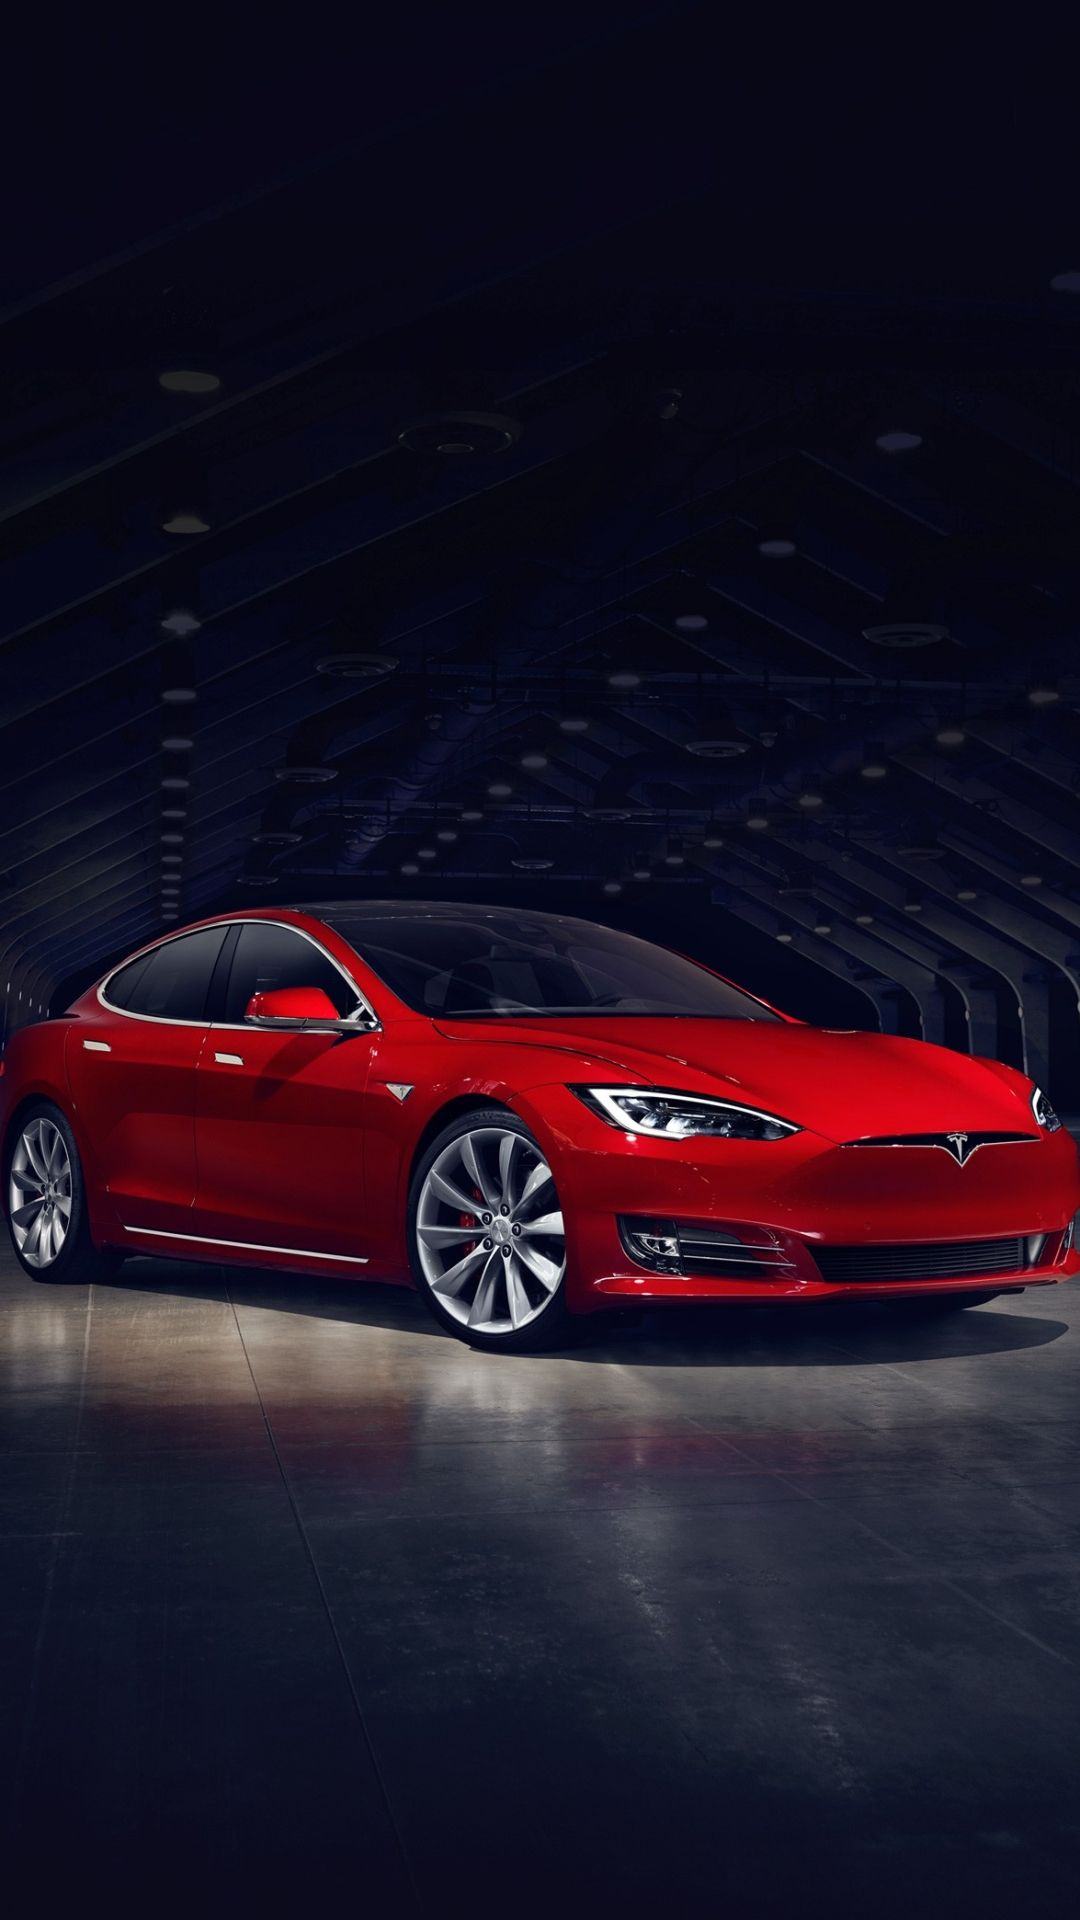 2016 Red Tesla Model S No Grill iPhone 8 Wallpapers